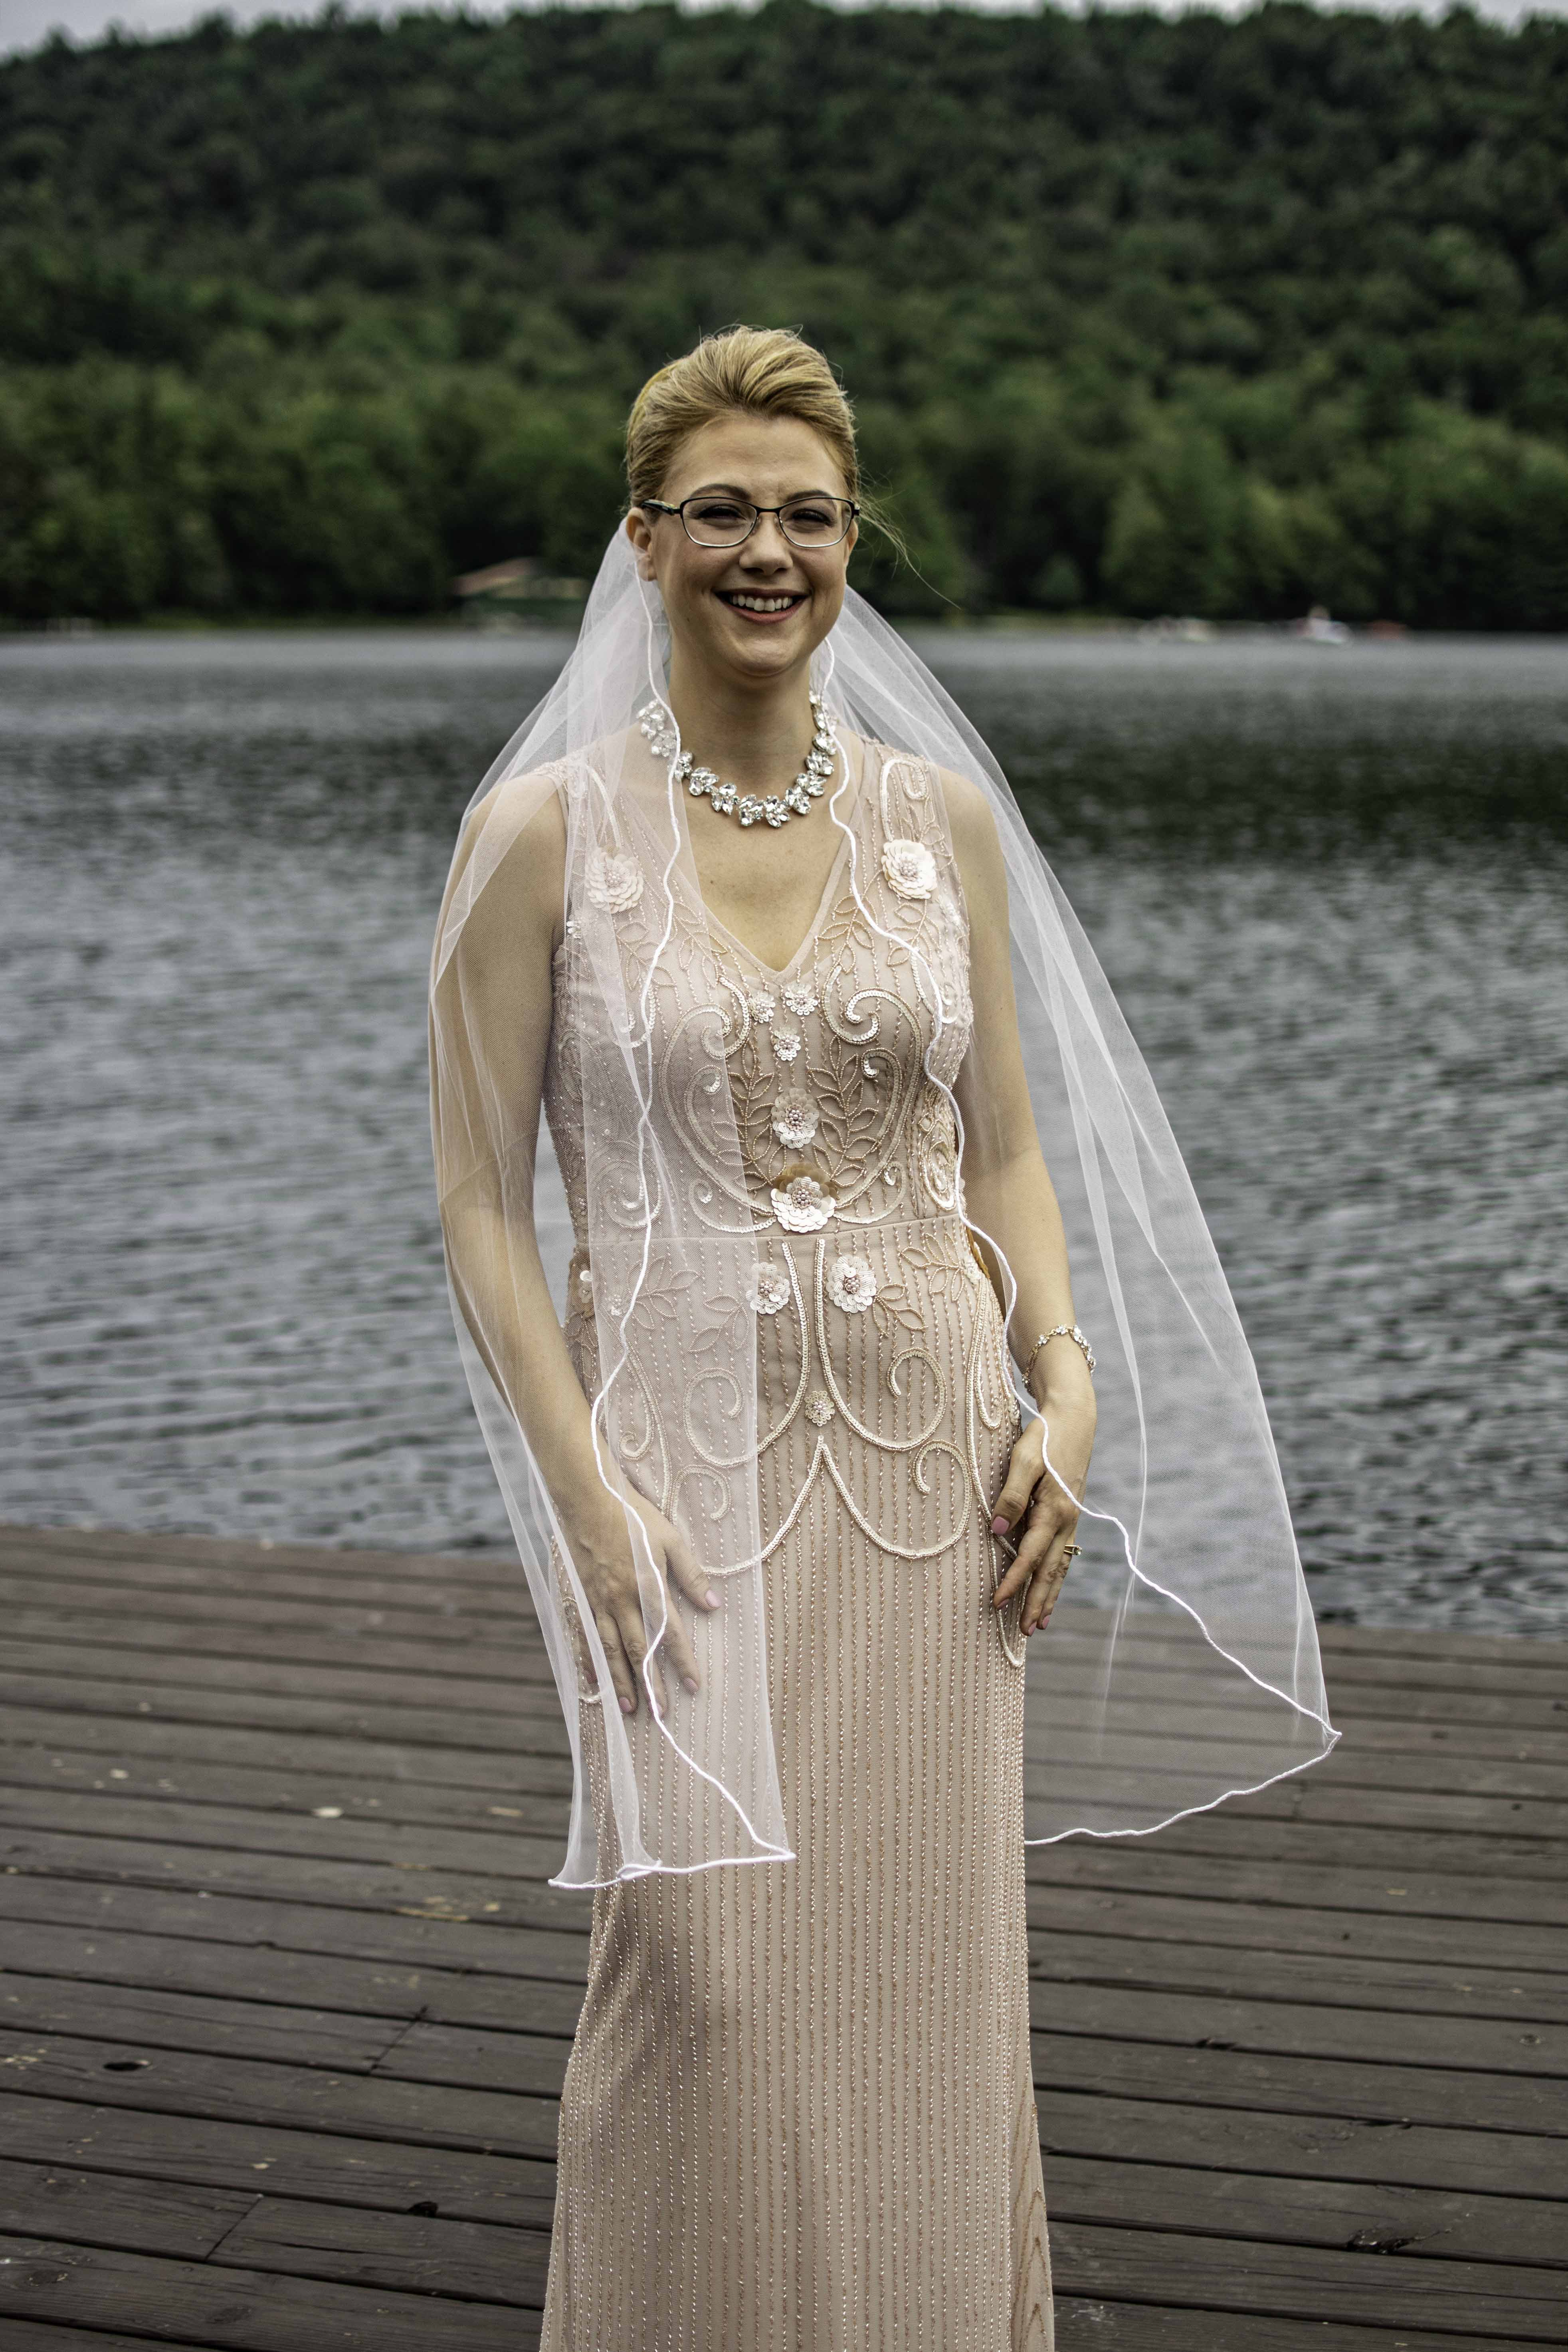 Beautiful Bride at the Big Moose Inn on her wedding day